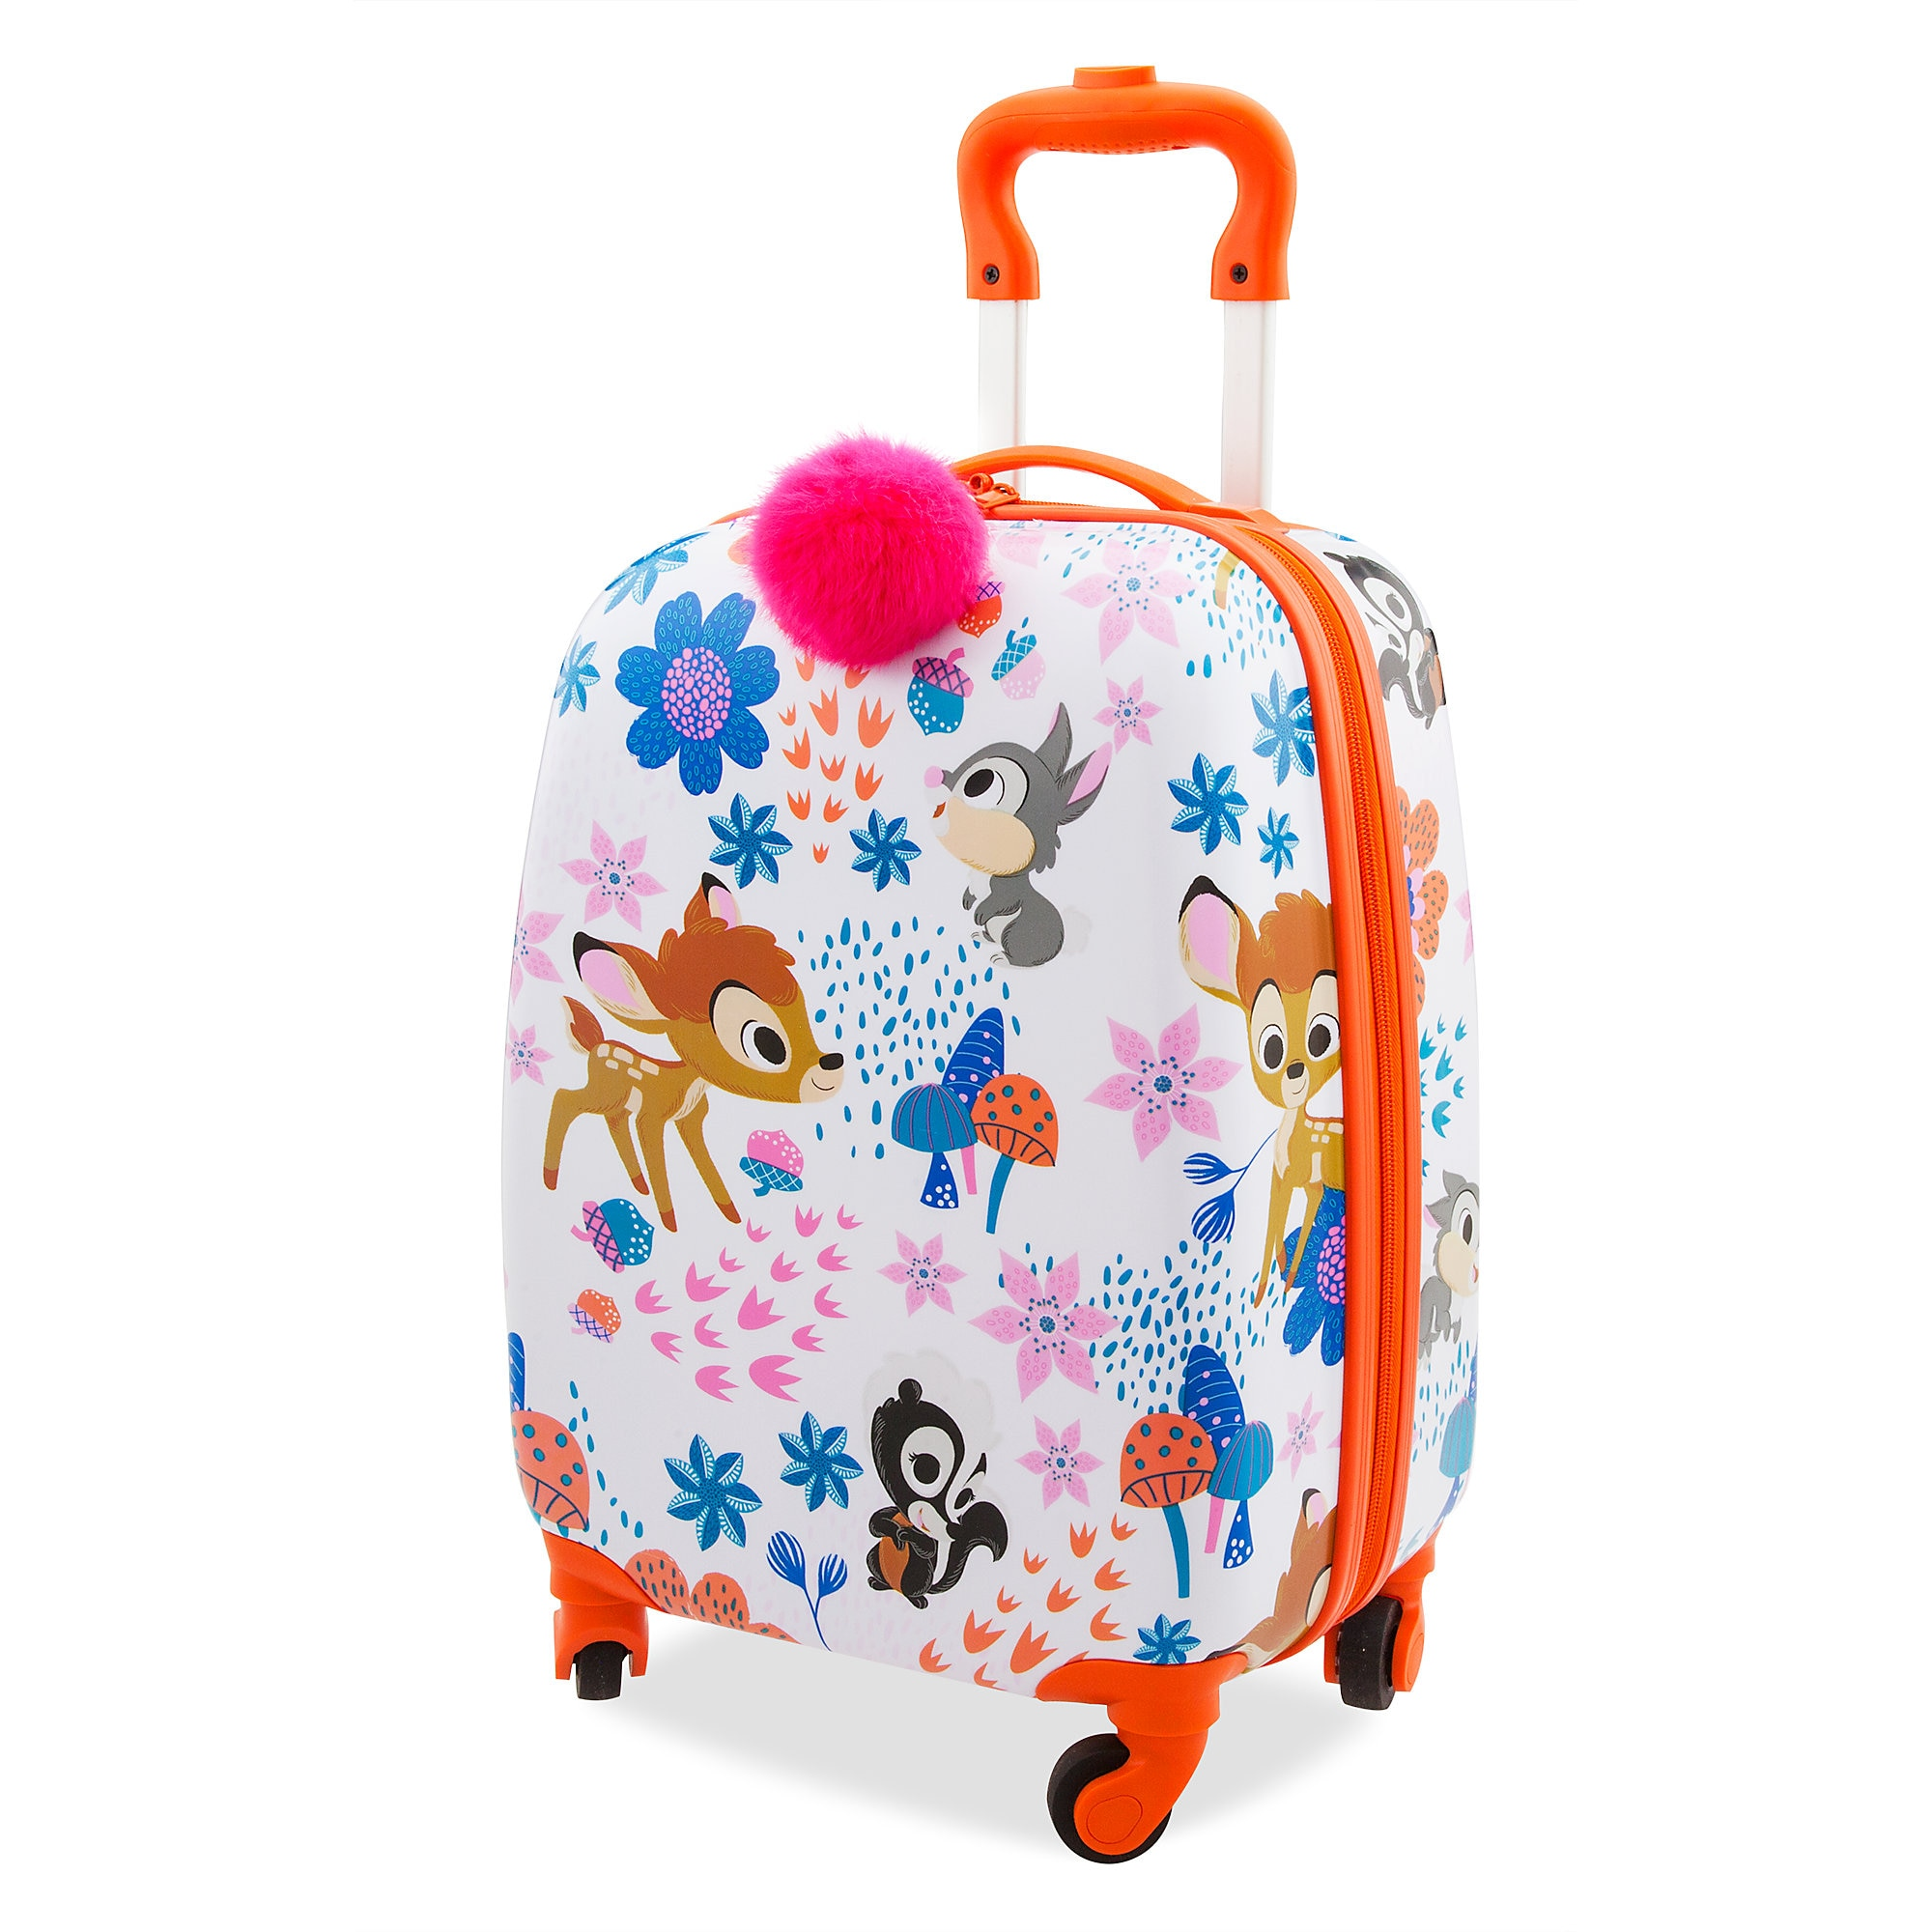 Bambi Rolling Luggage - Disney Furrytale friends